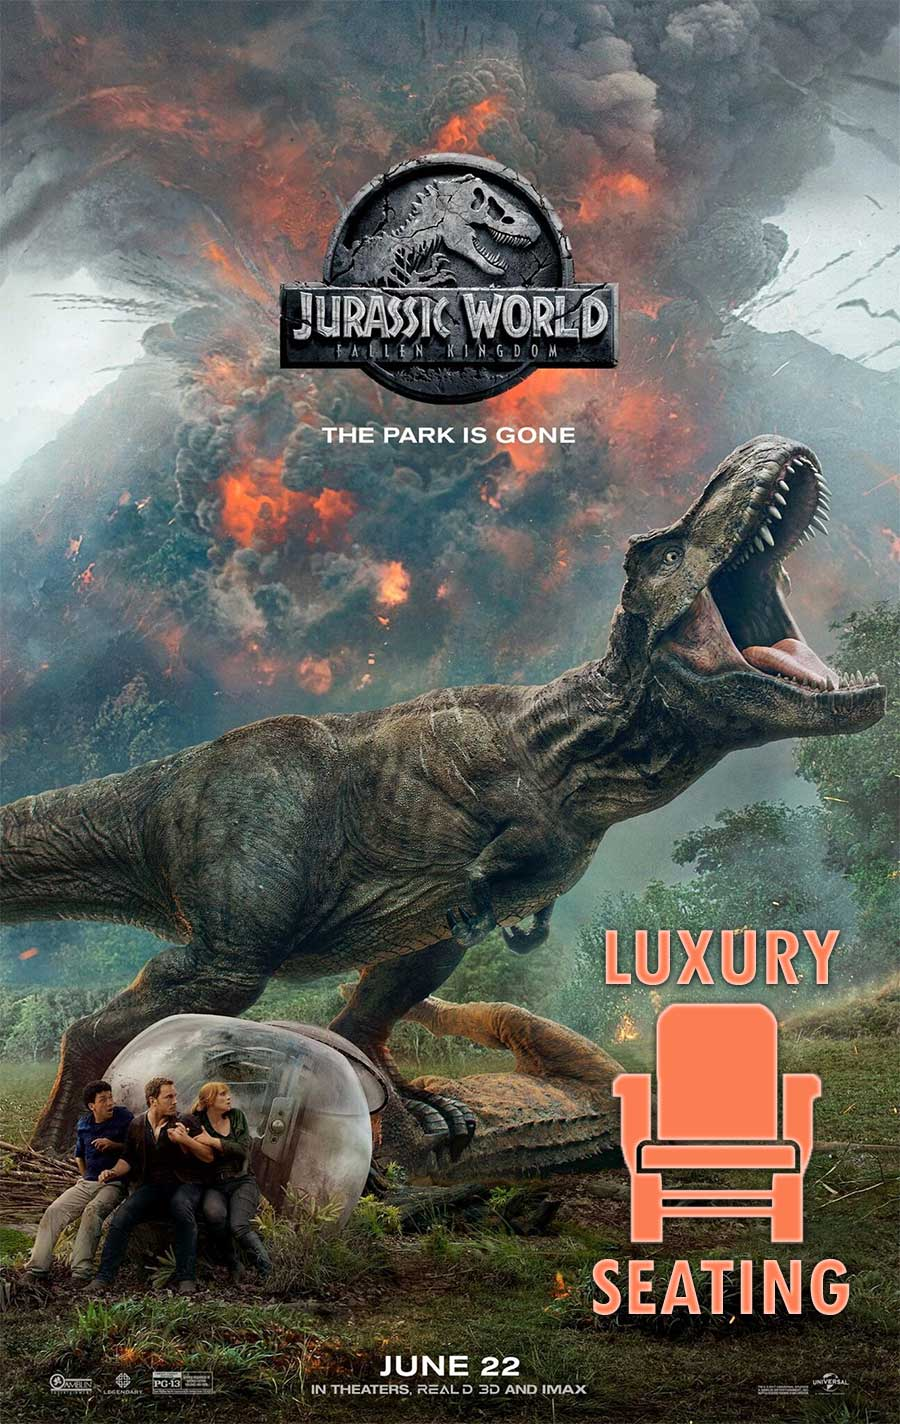 Poster for Jurassic World 2 (LUX)